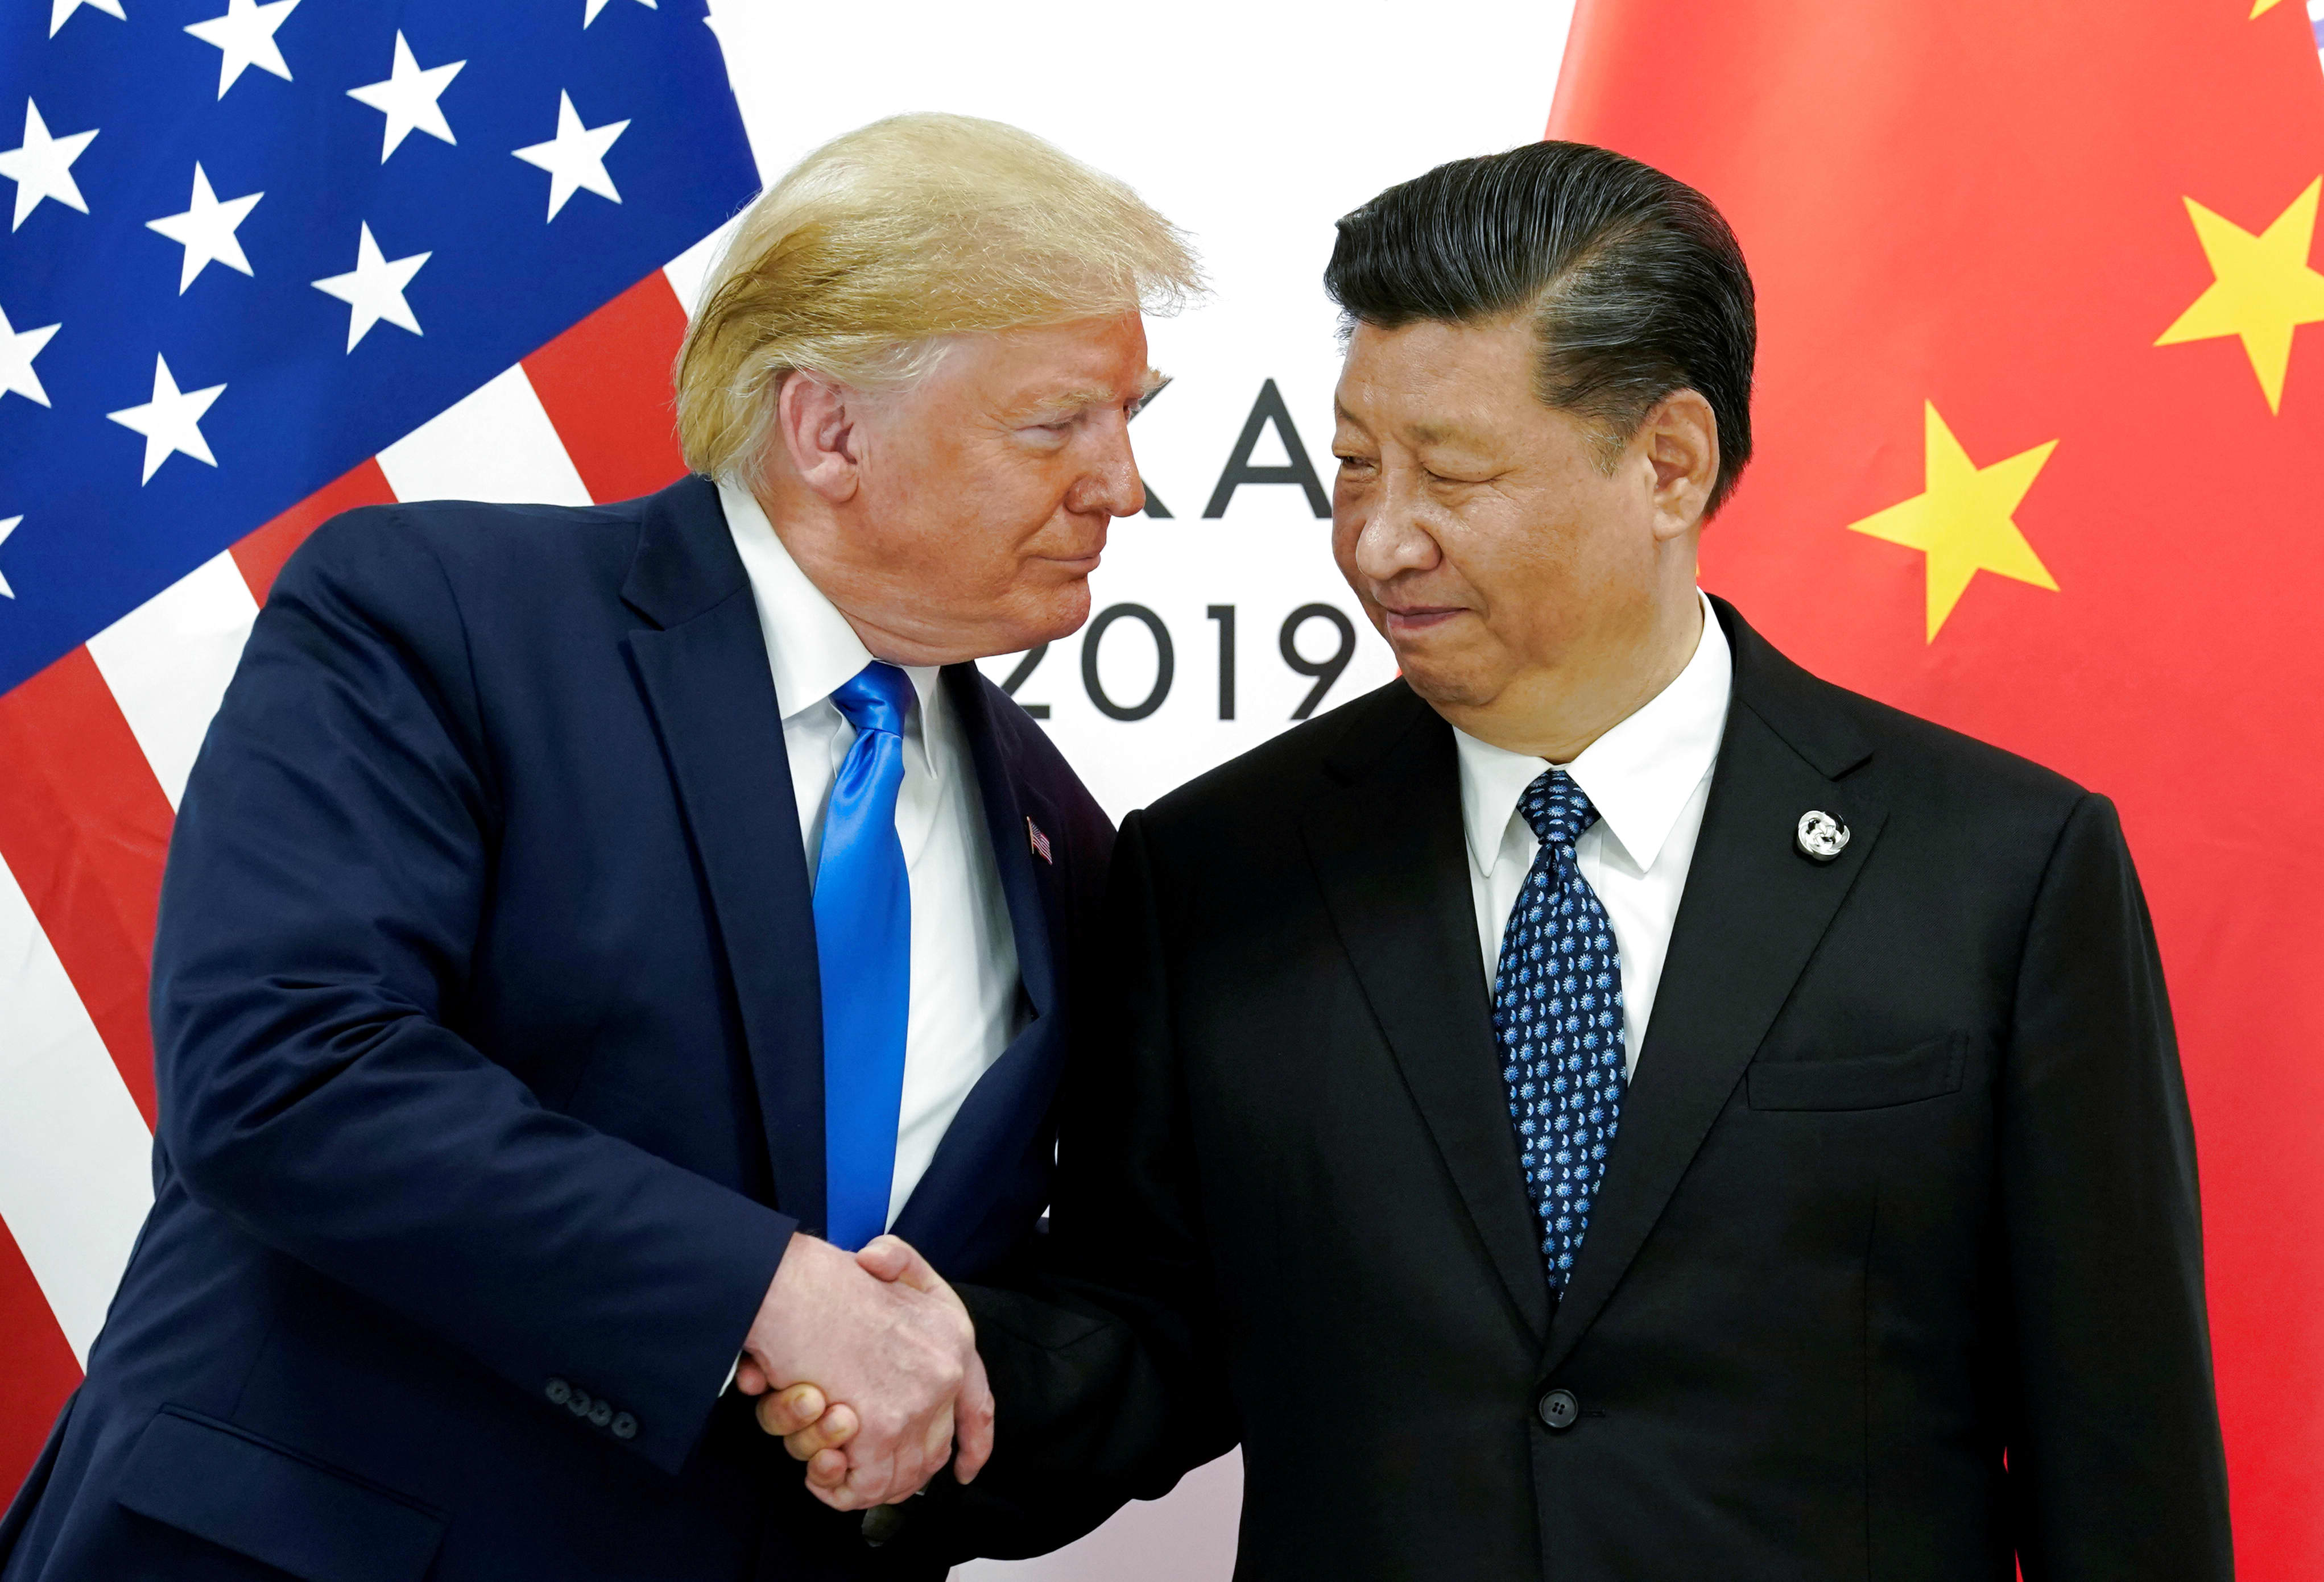 China appears to be the winner of the Trump-Xi meeting at G-20, experts say